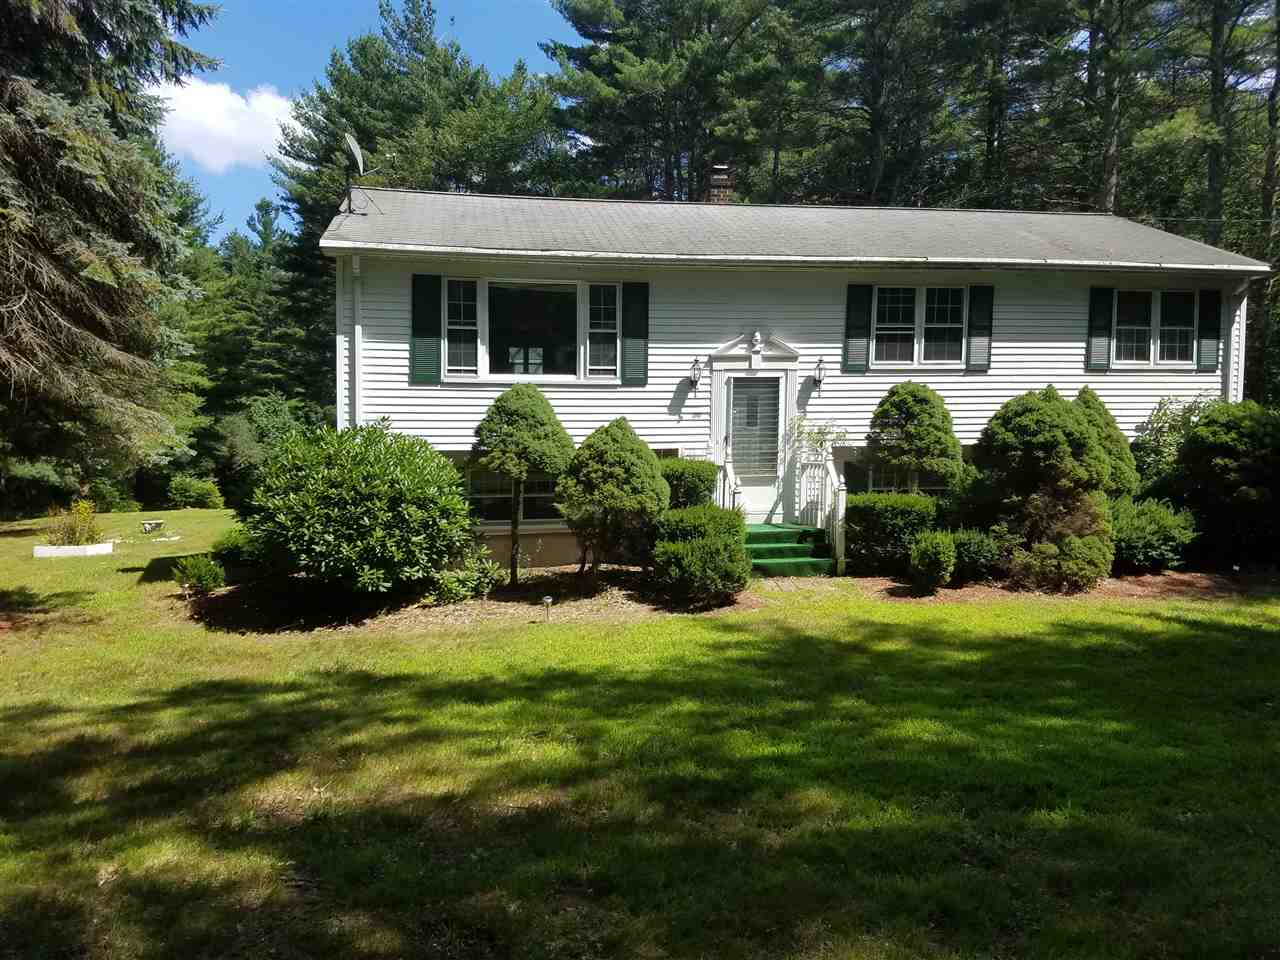 Photo of 50 Kendall Pond Road Windham NH 03087